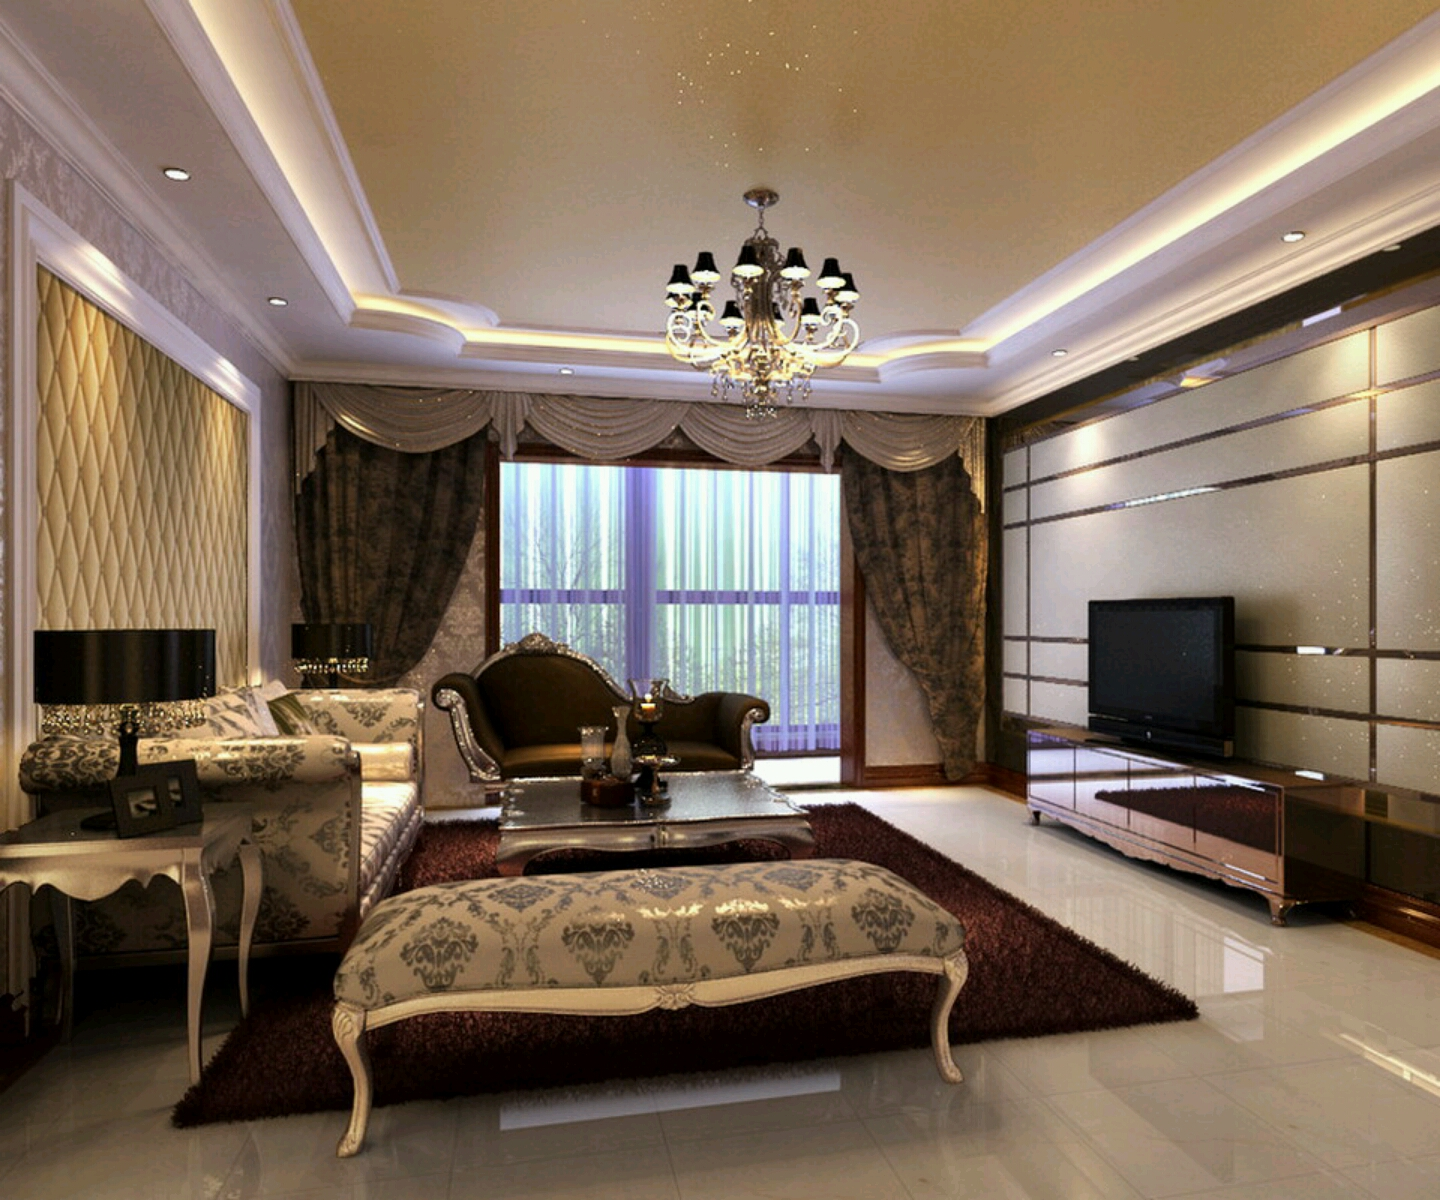 Interior decorating ideas living rooms dream house for Fine home decor